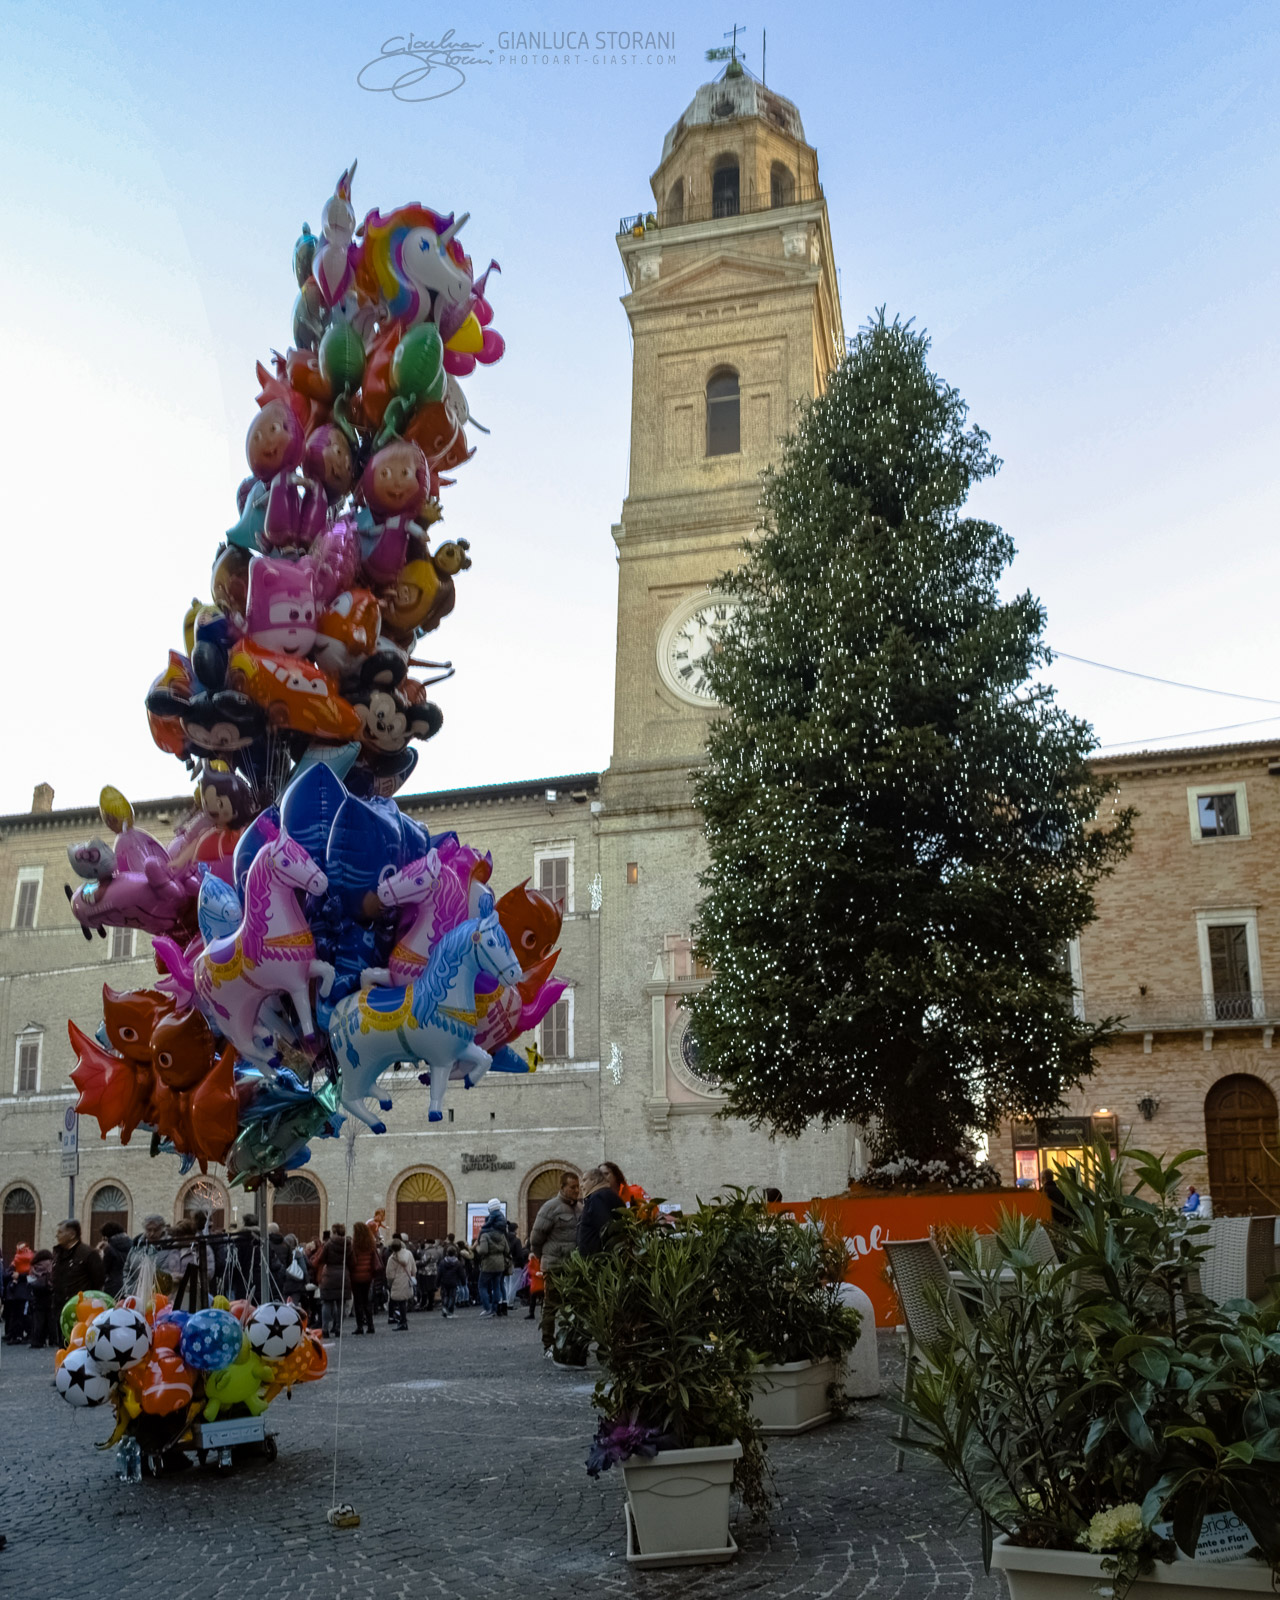 Festa della Befana 2018 di Macerata - Gianluca Storani Photo Art (ID: 4-7544)